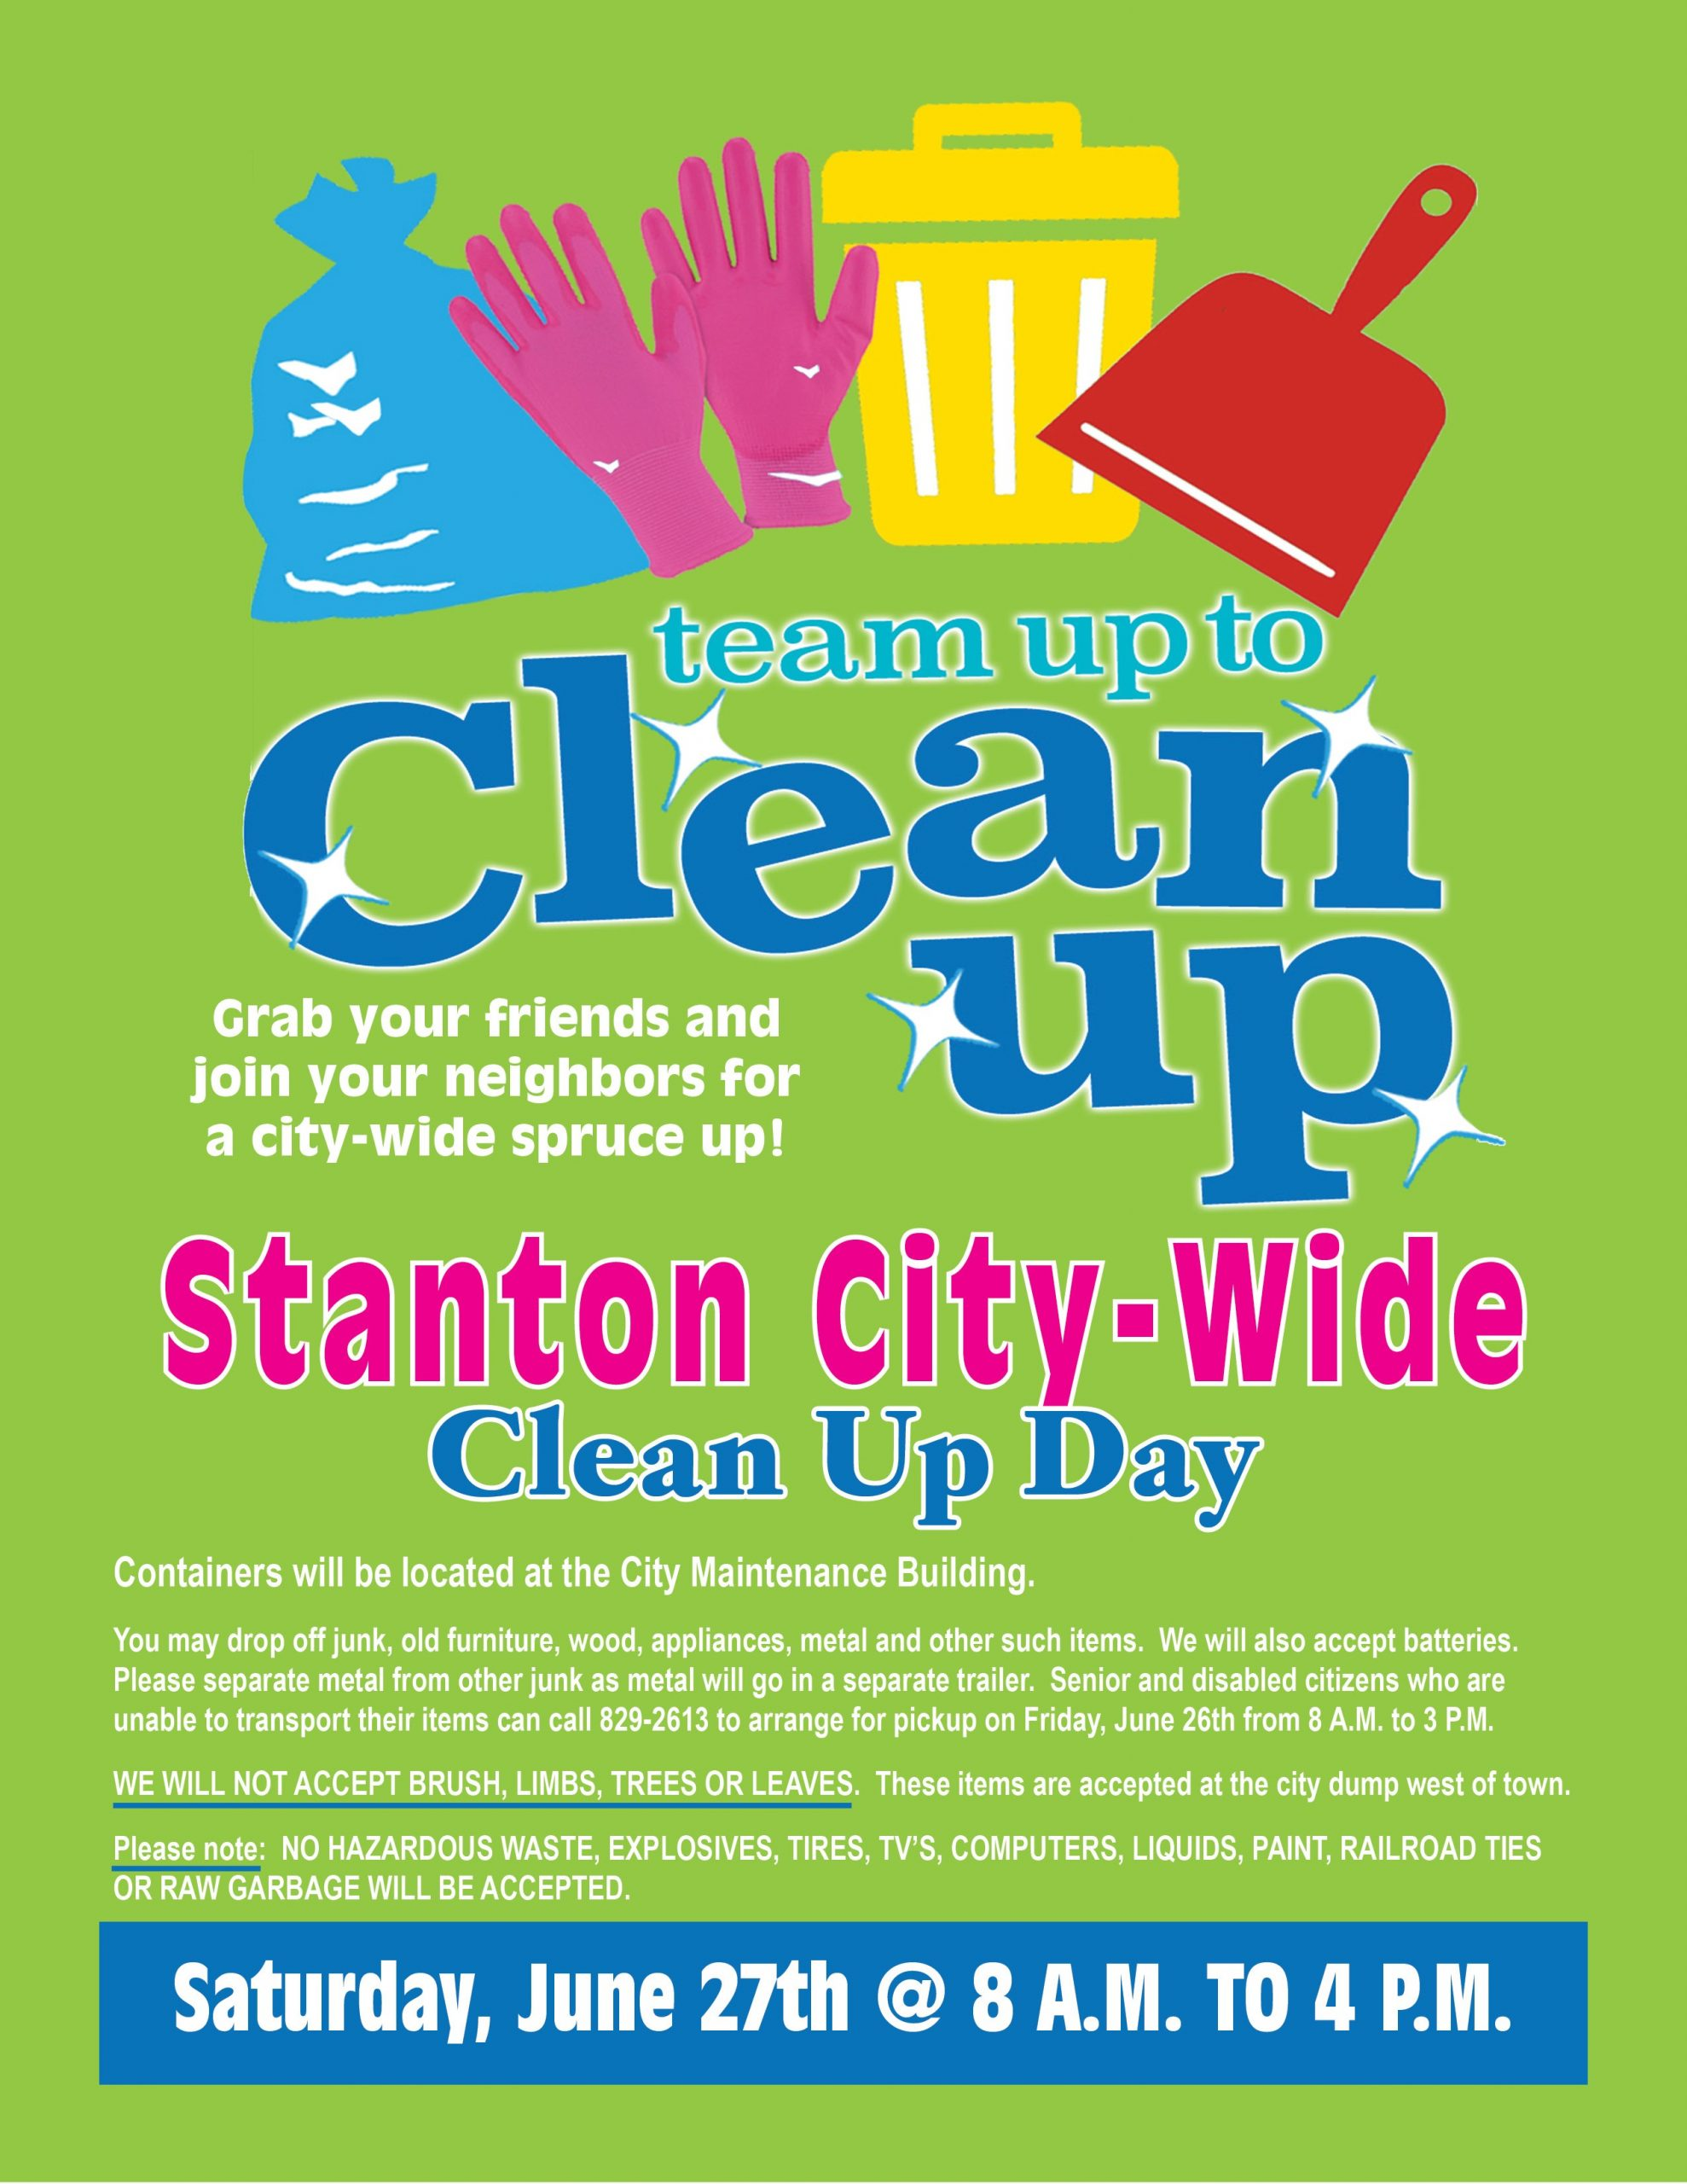 Stanton City-Wide Clean Up Day